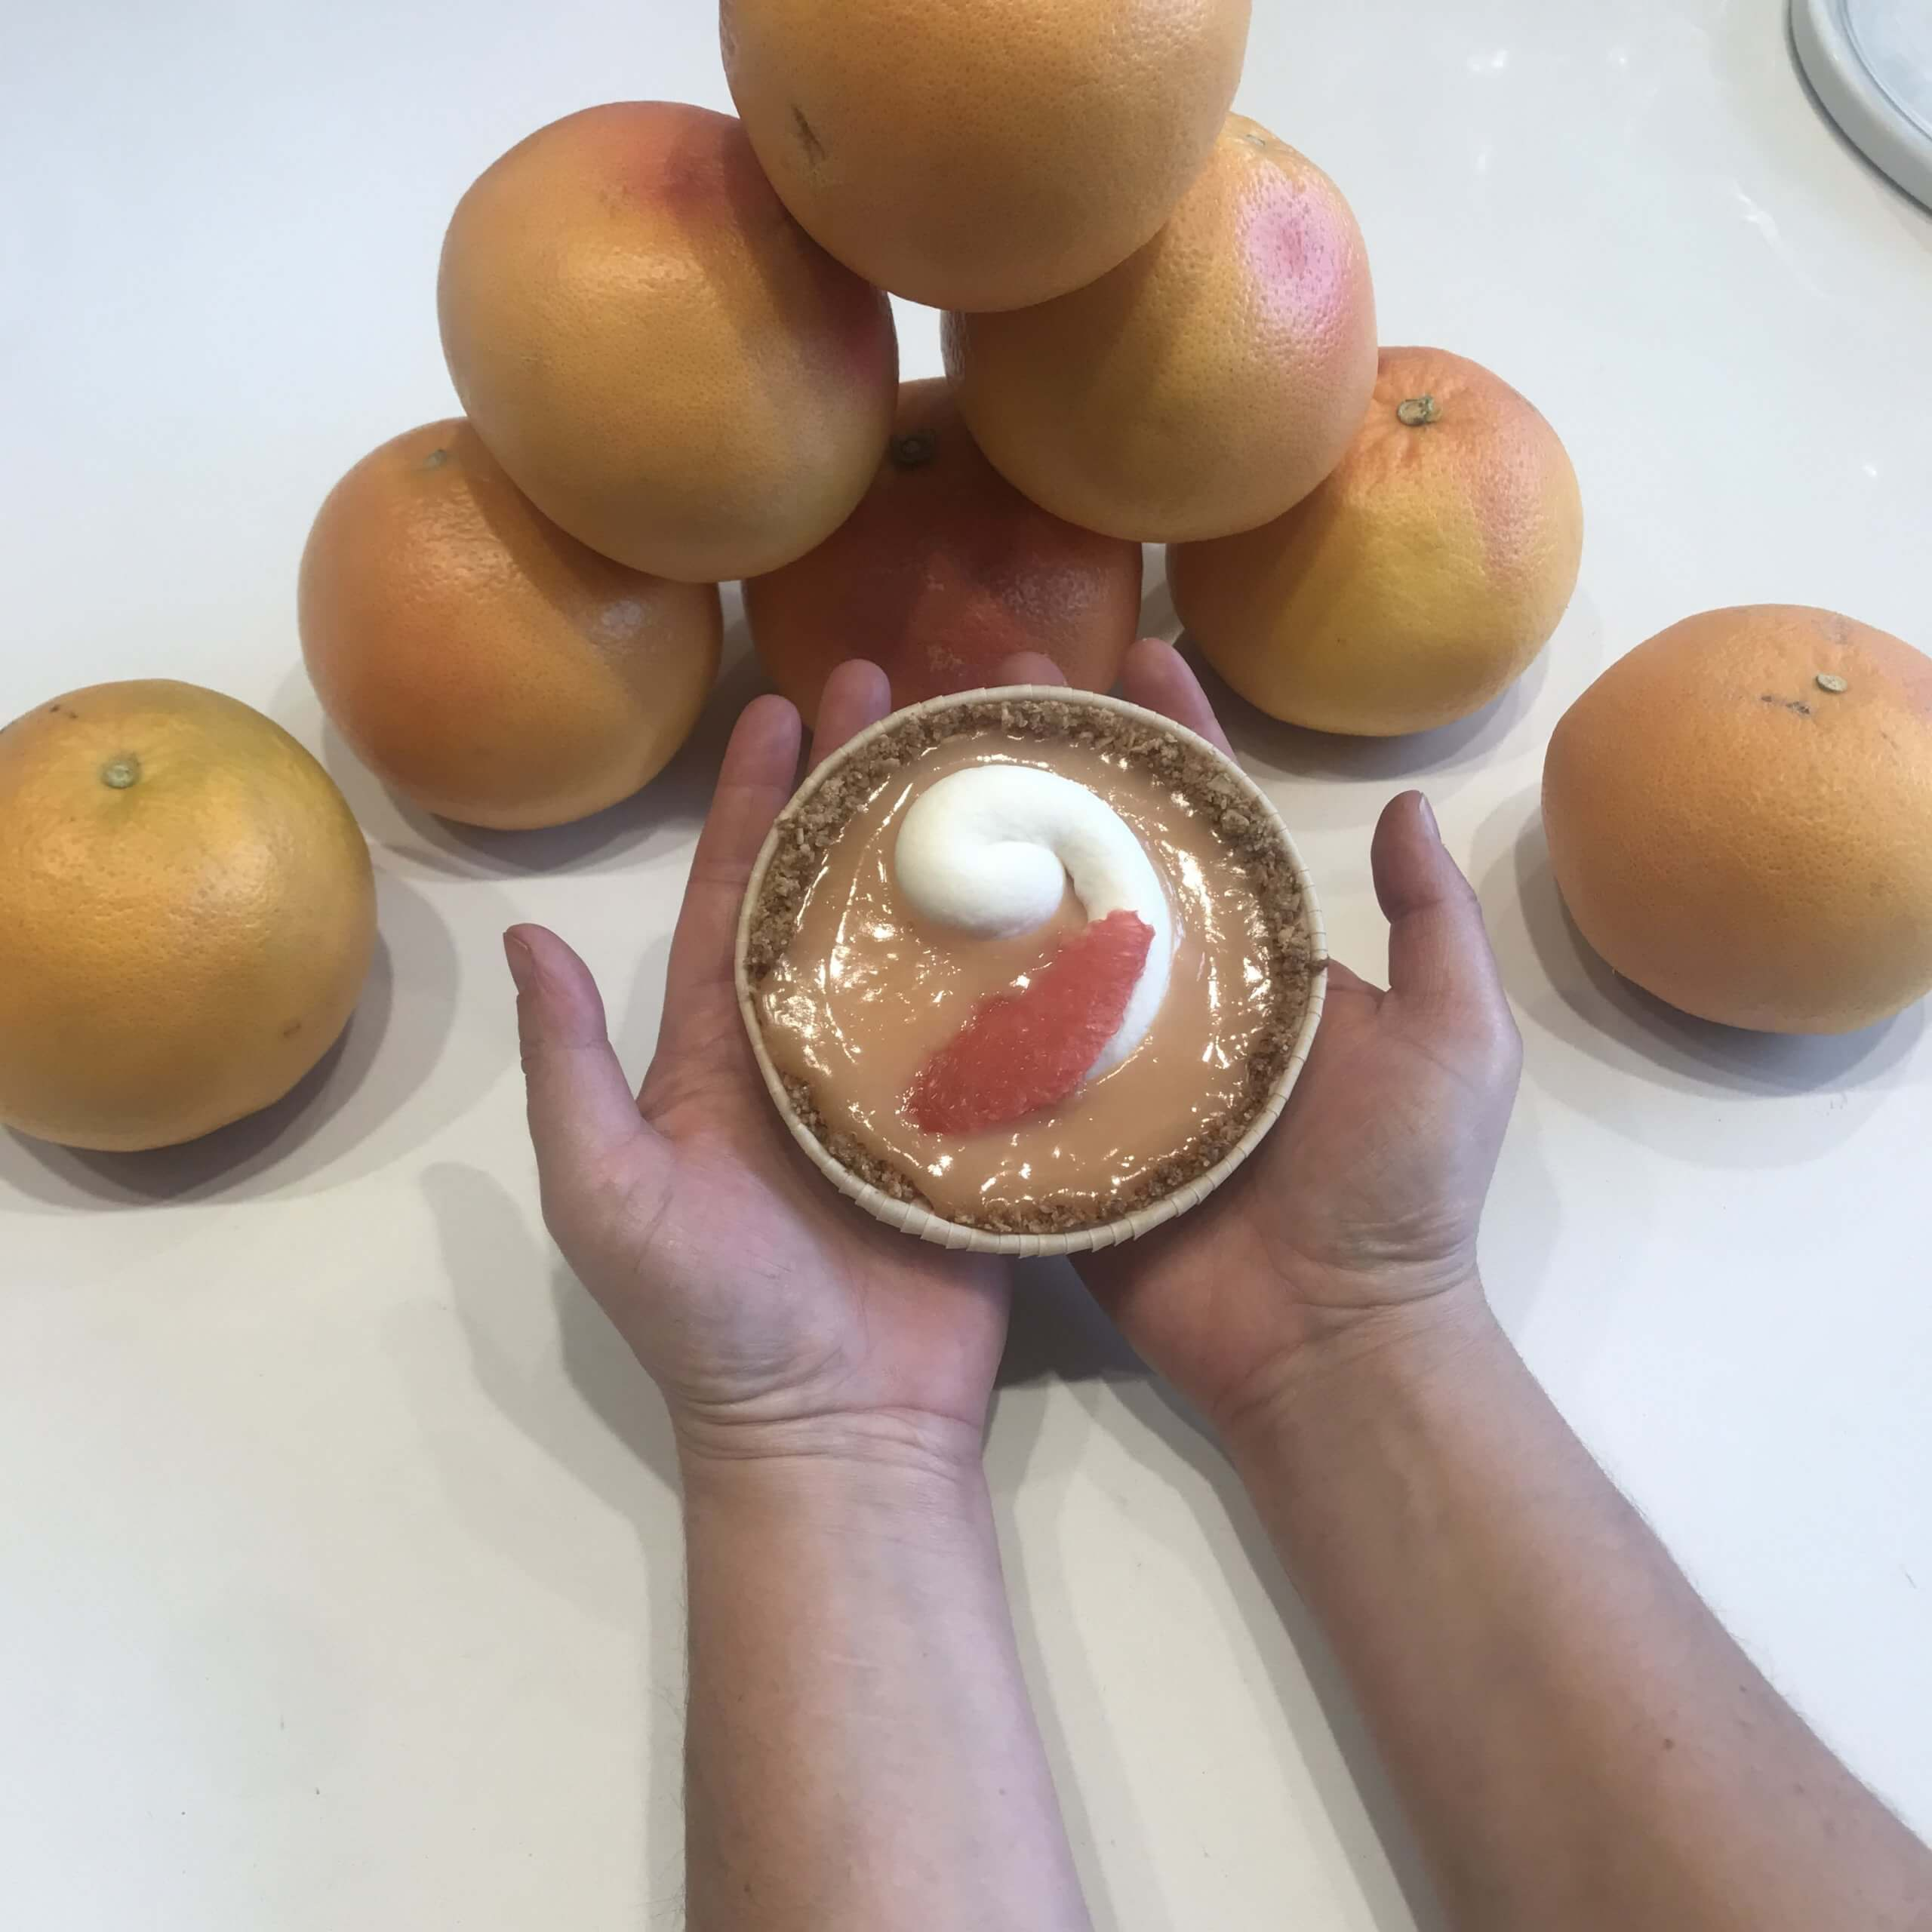 hands holding prepared food item with citrus fruits